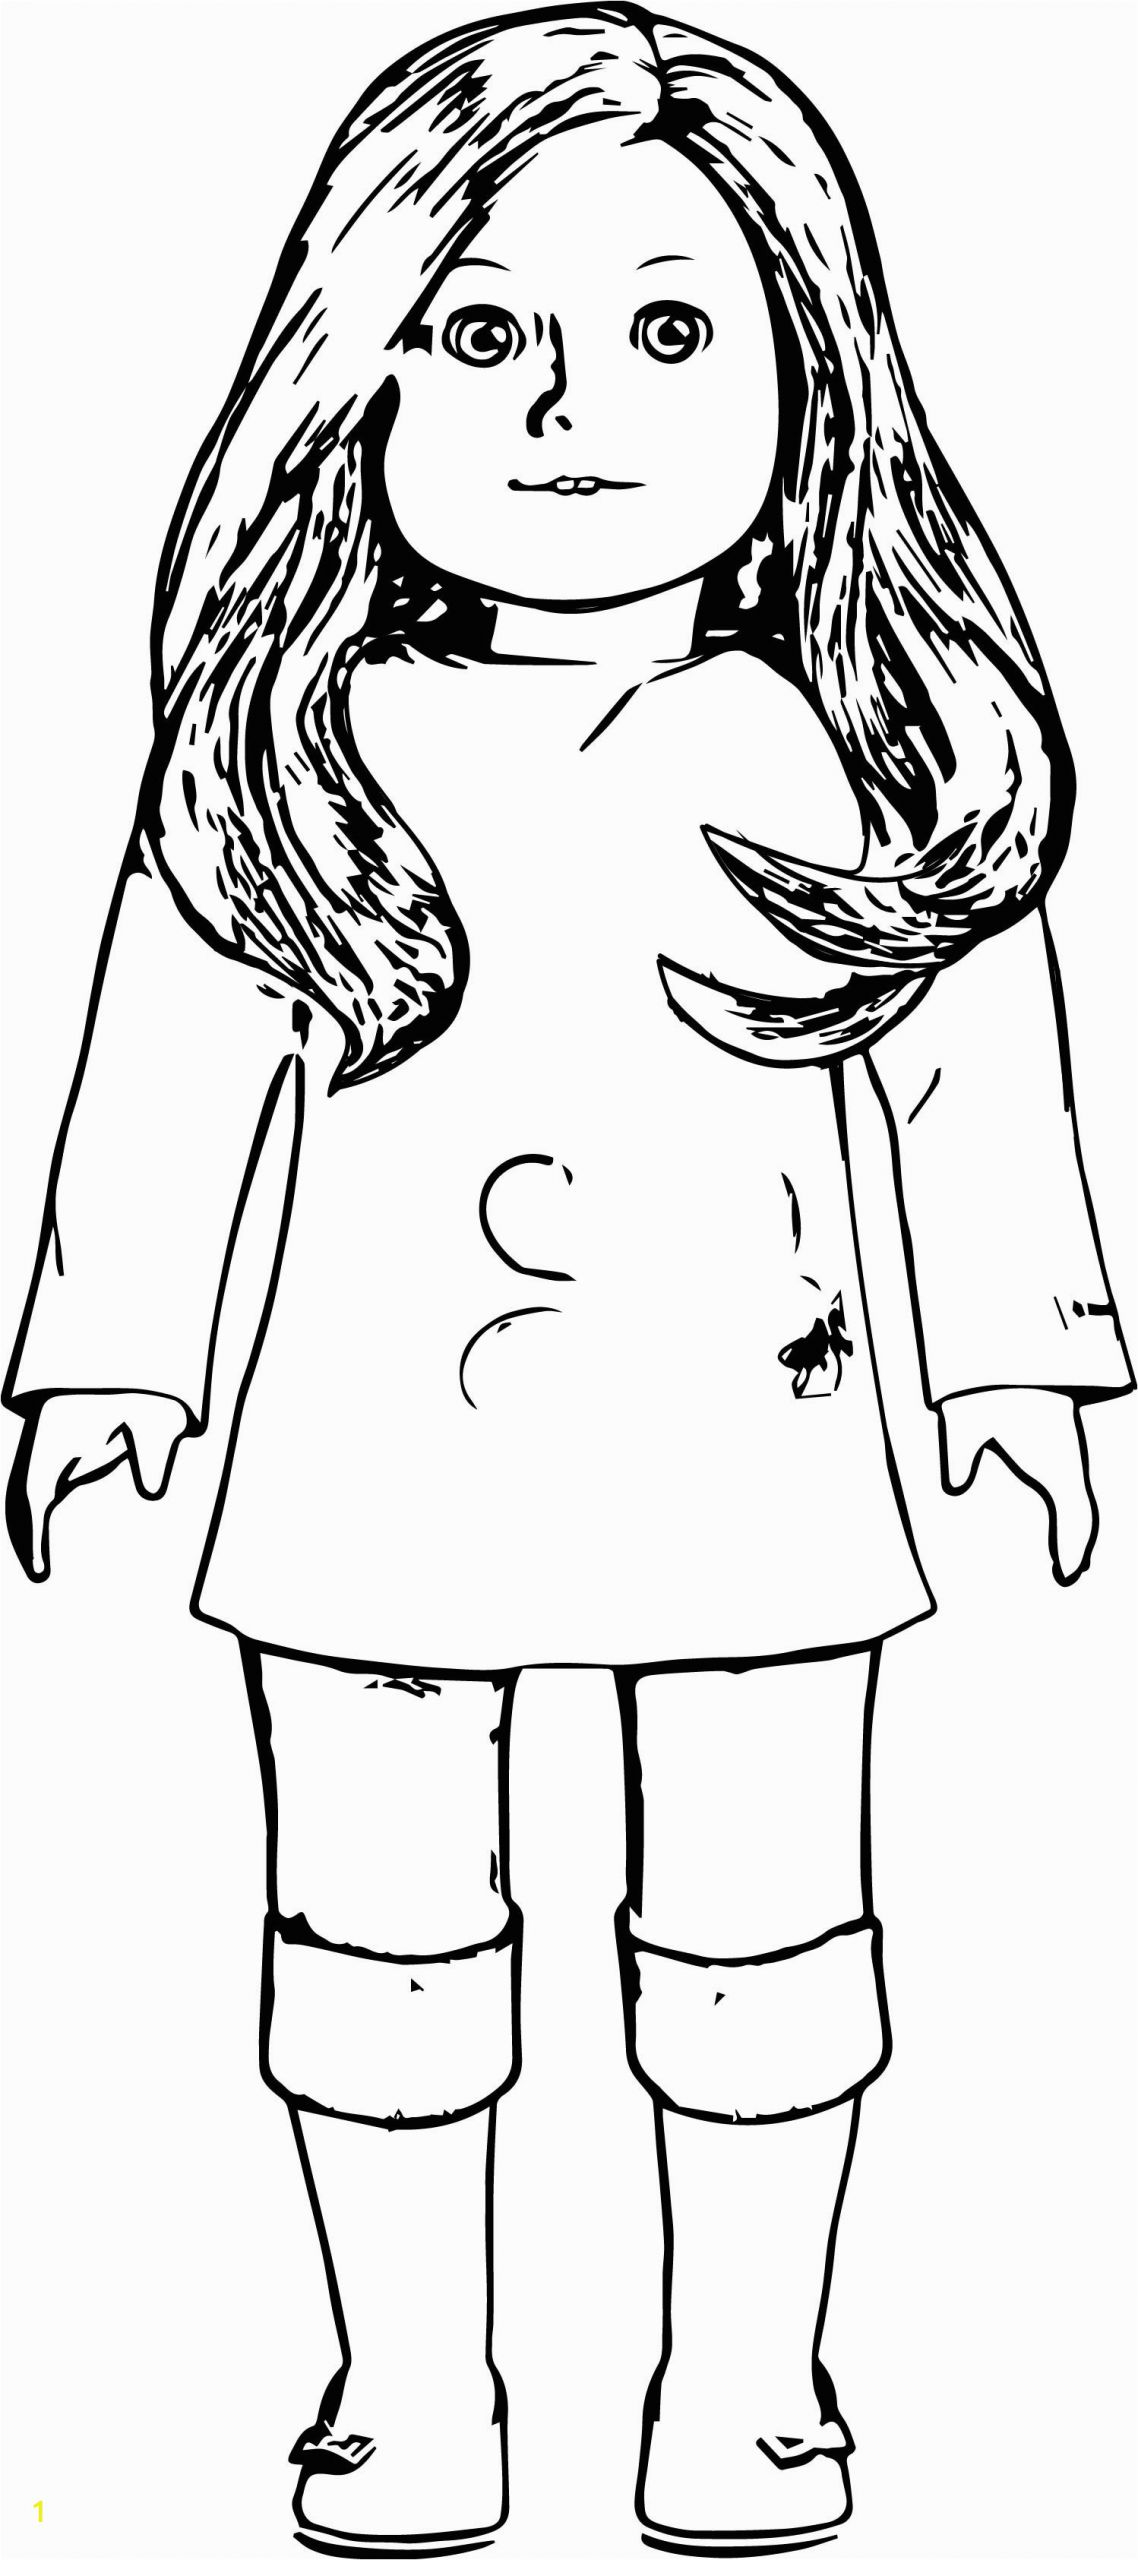 American Girl Coloring Pages to Print American Girl Coloring Pages Best Coloring Pages for Kids